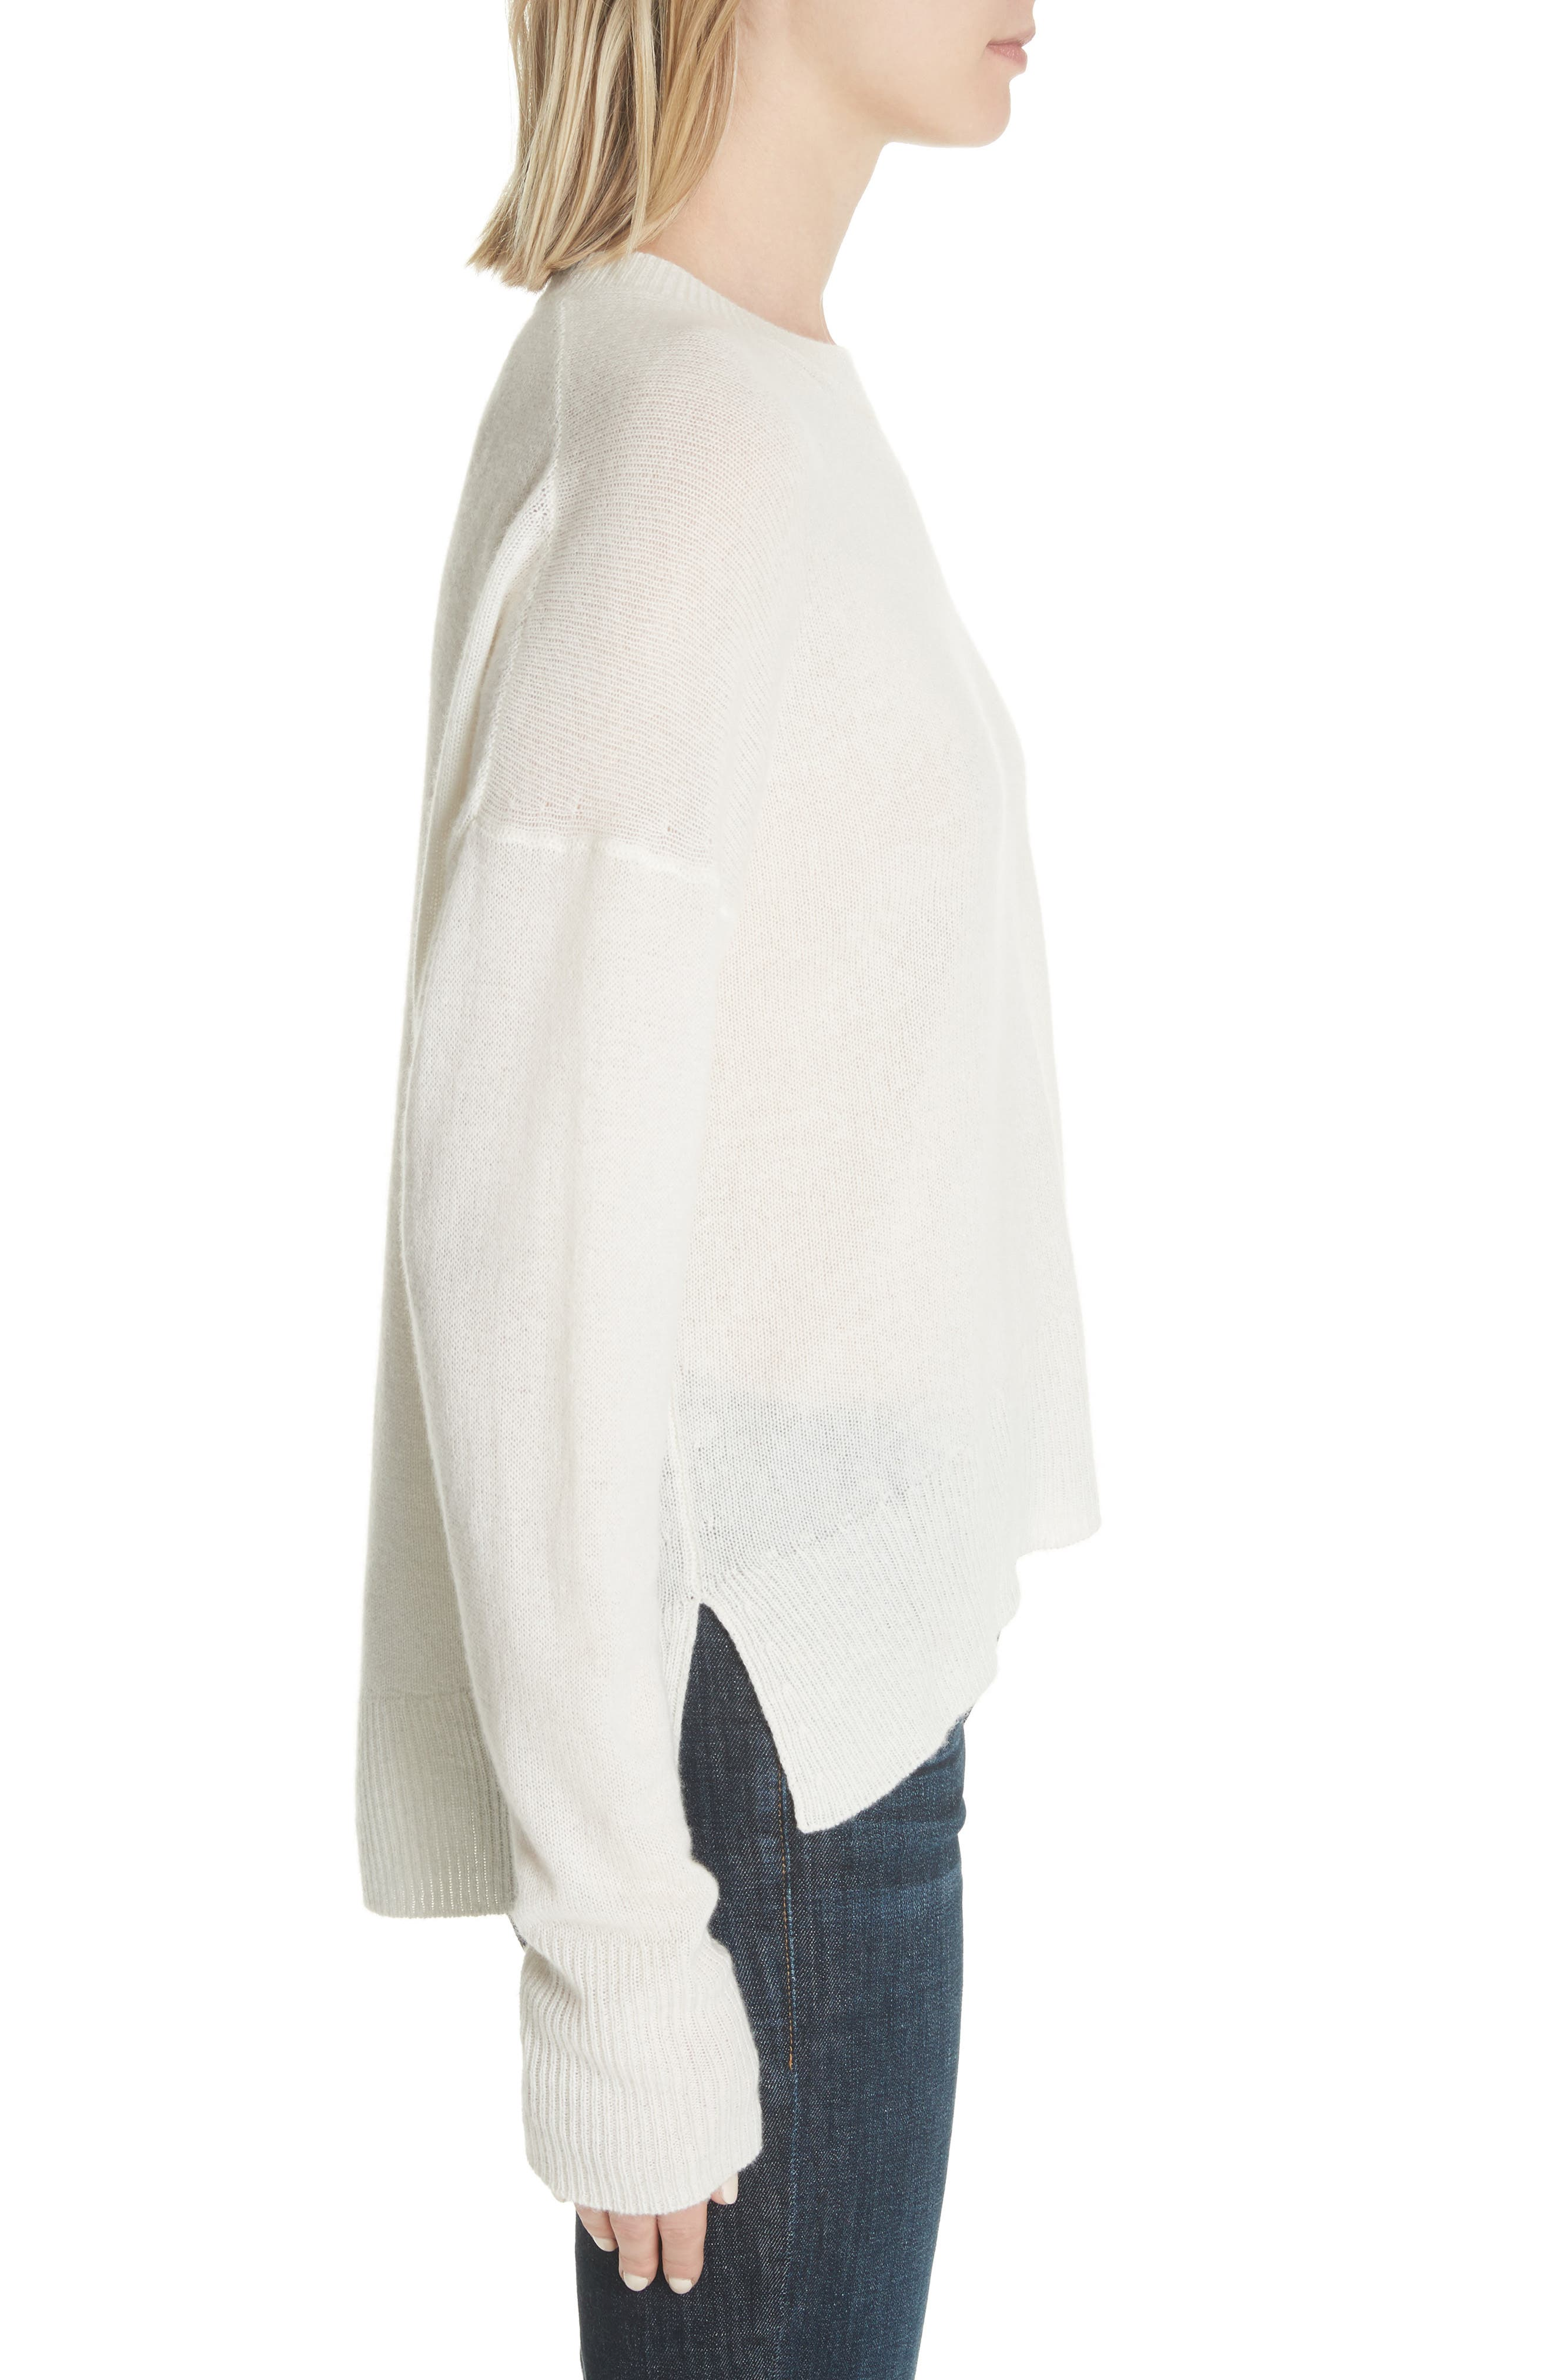 Karenia L Cashmere Sweater,                             Alternate thumbnail 3, color,                             Ivory